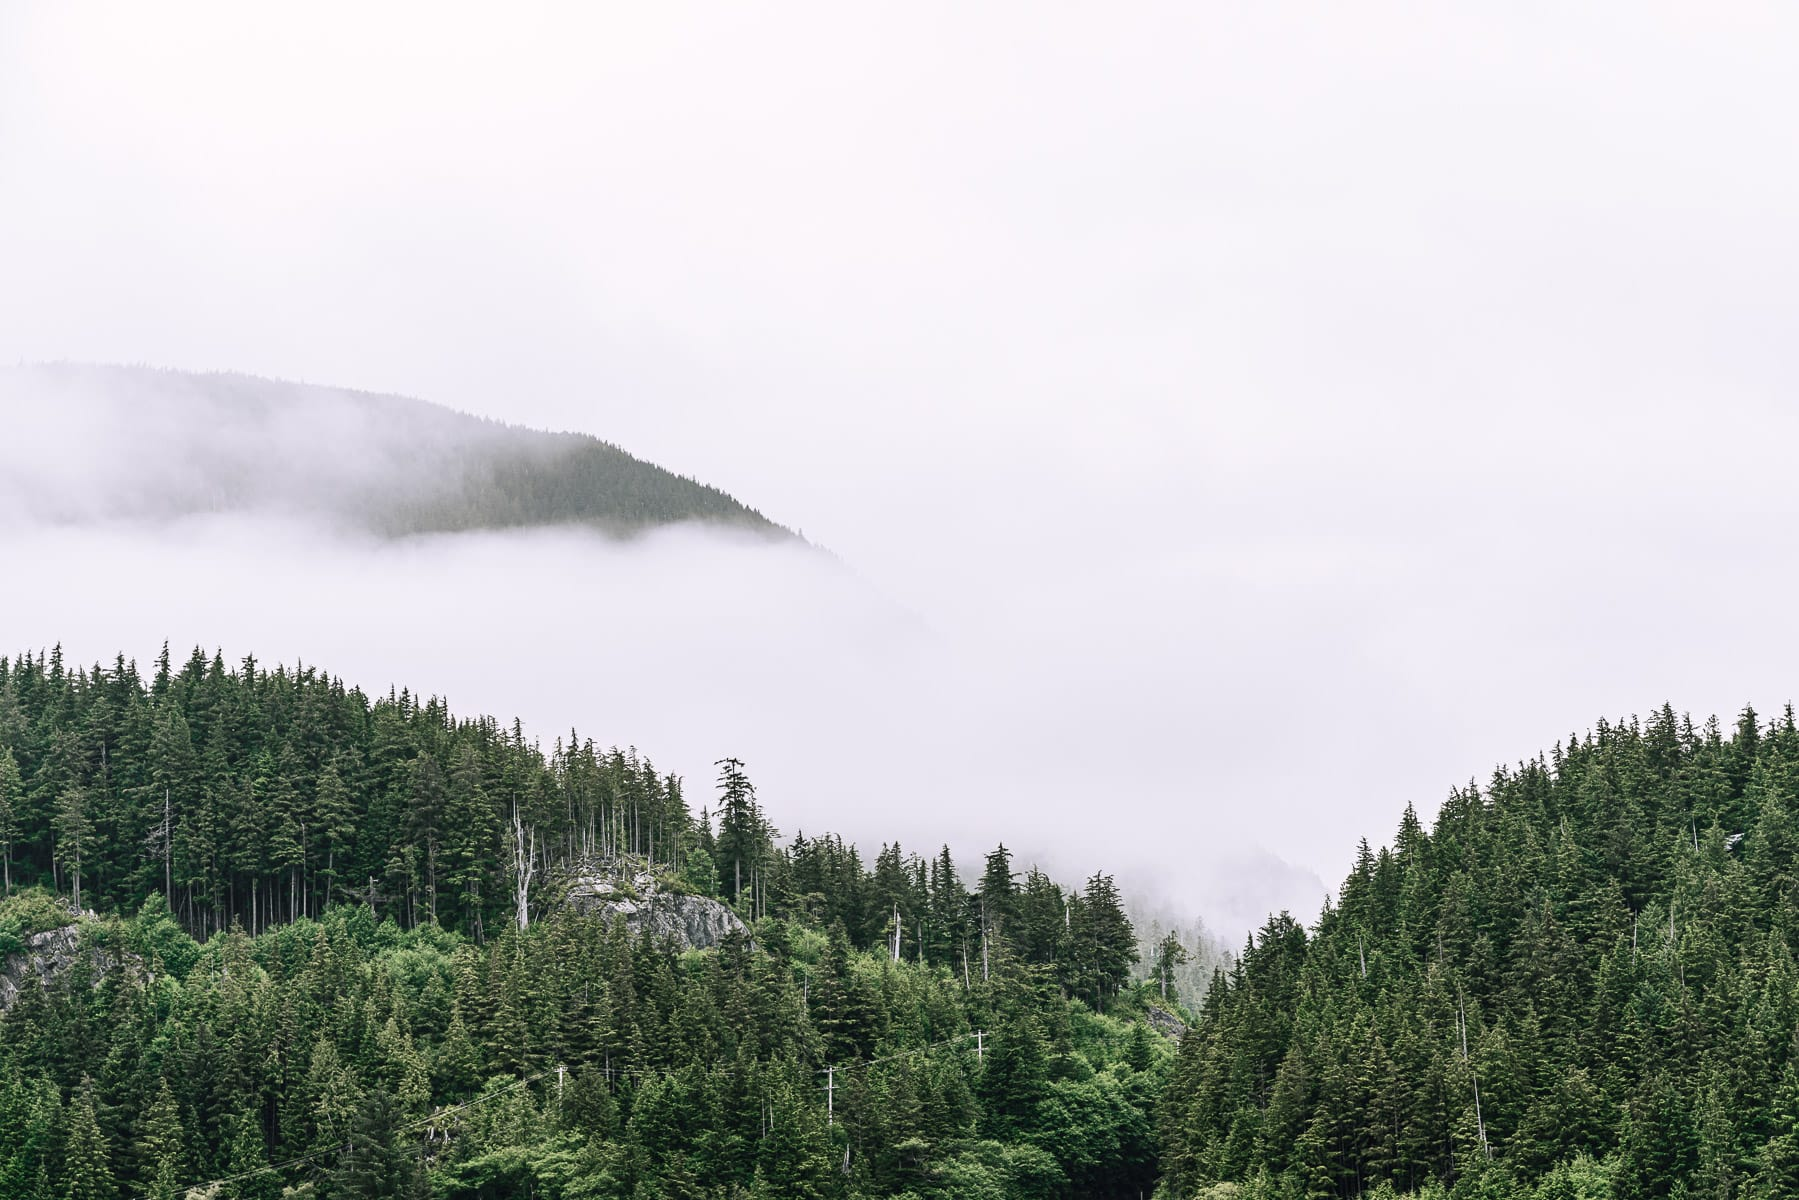 Fog covers the forested mountains above Ketchikan, Alaska.